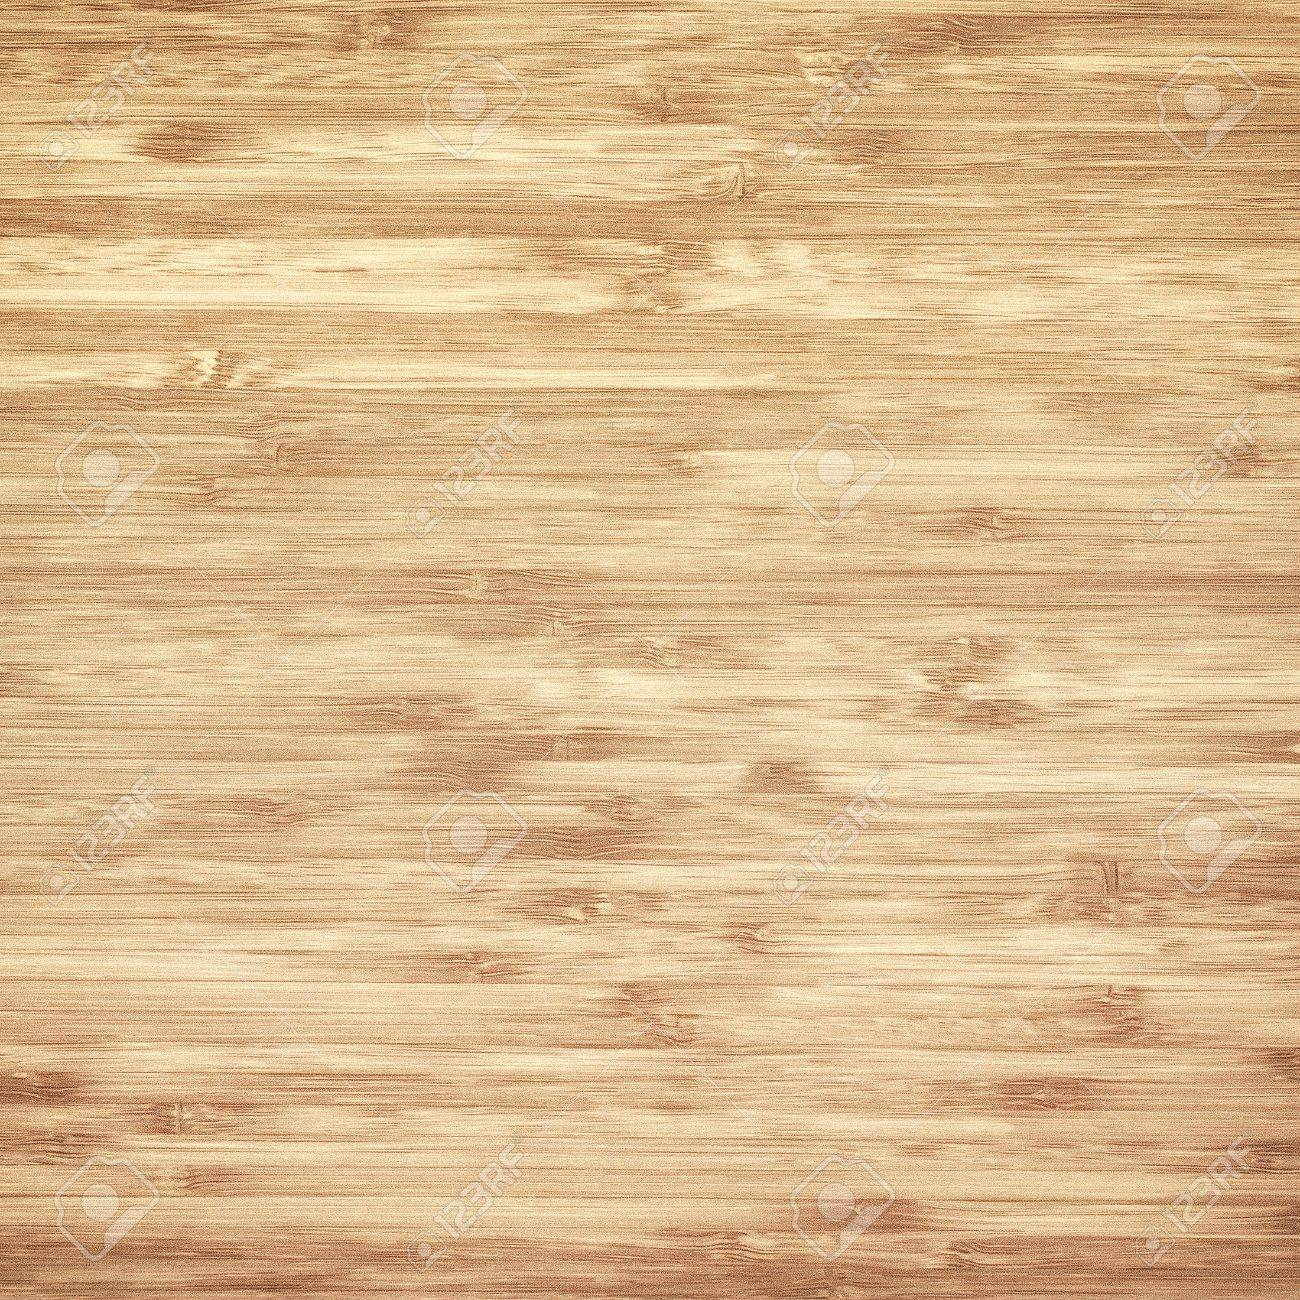 Bamboo wooden background Stock Photo - 21393377